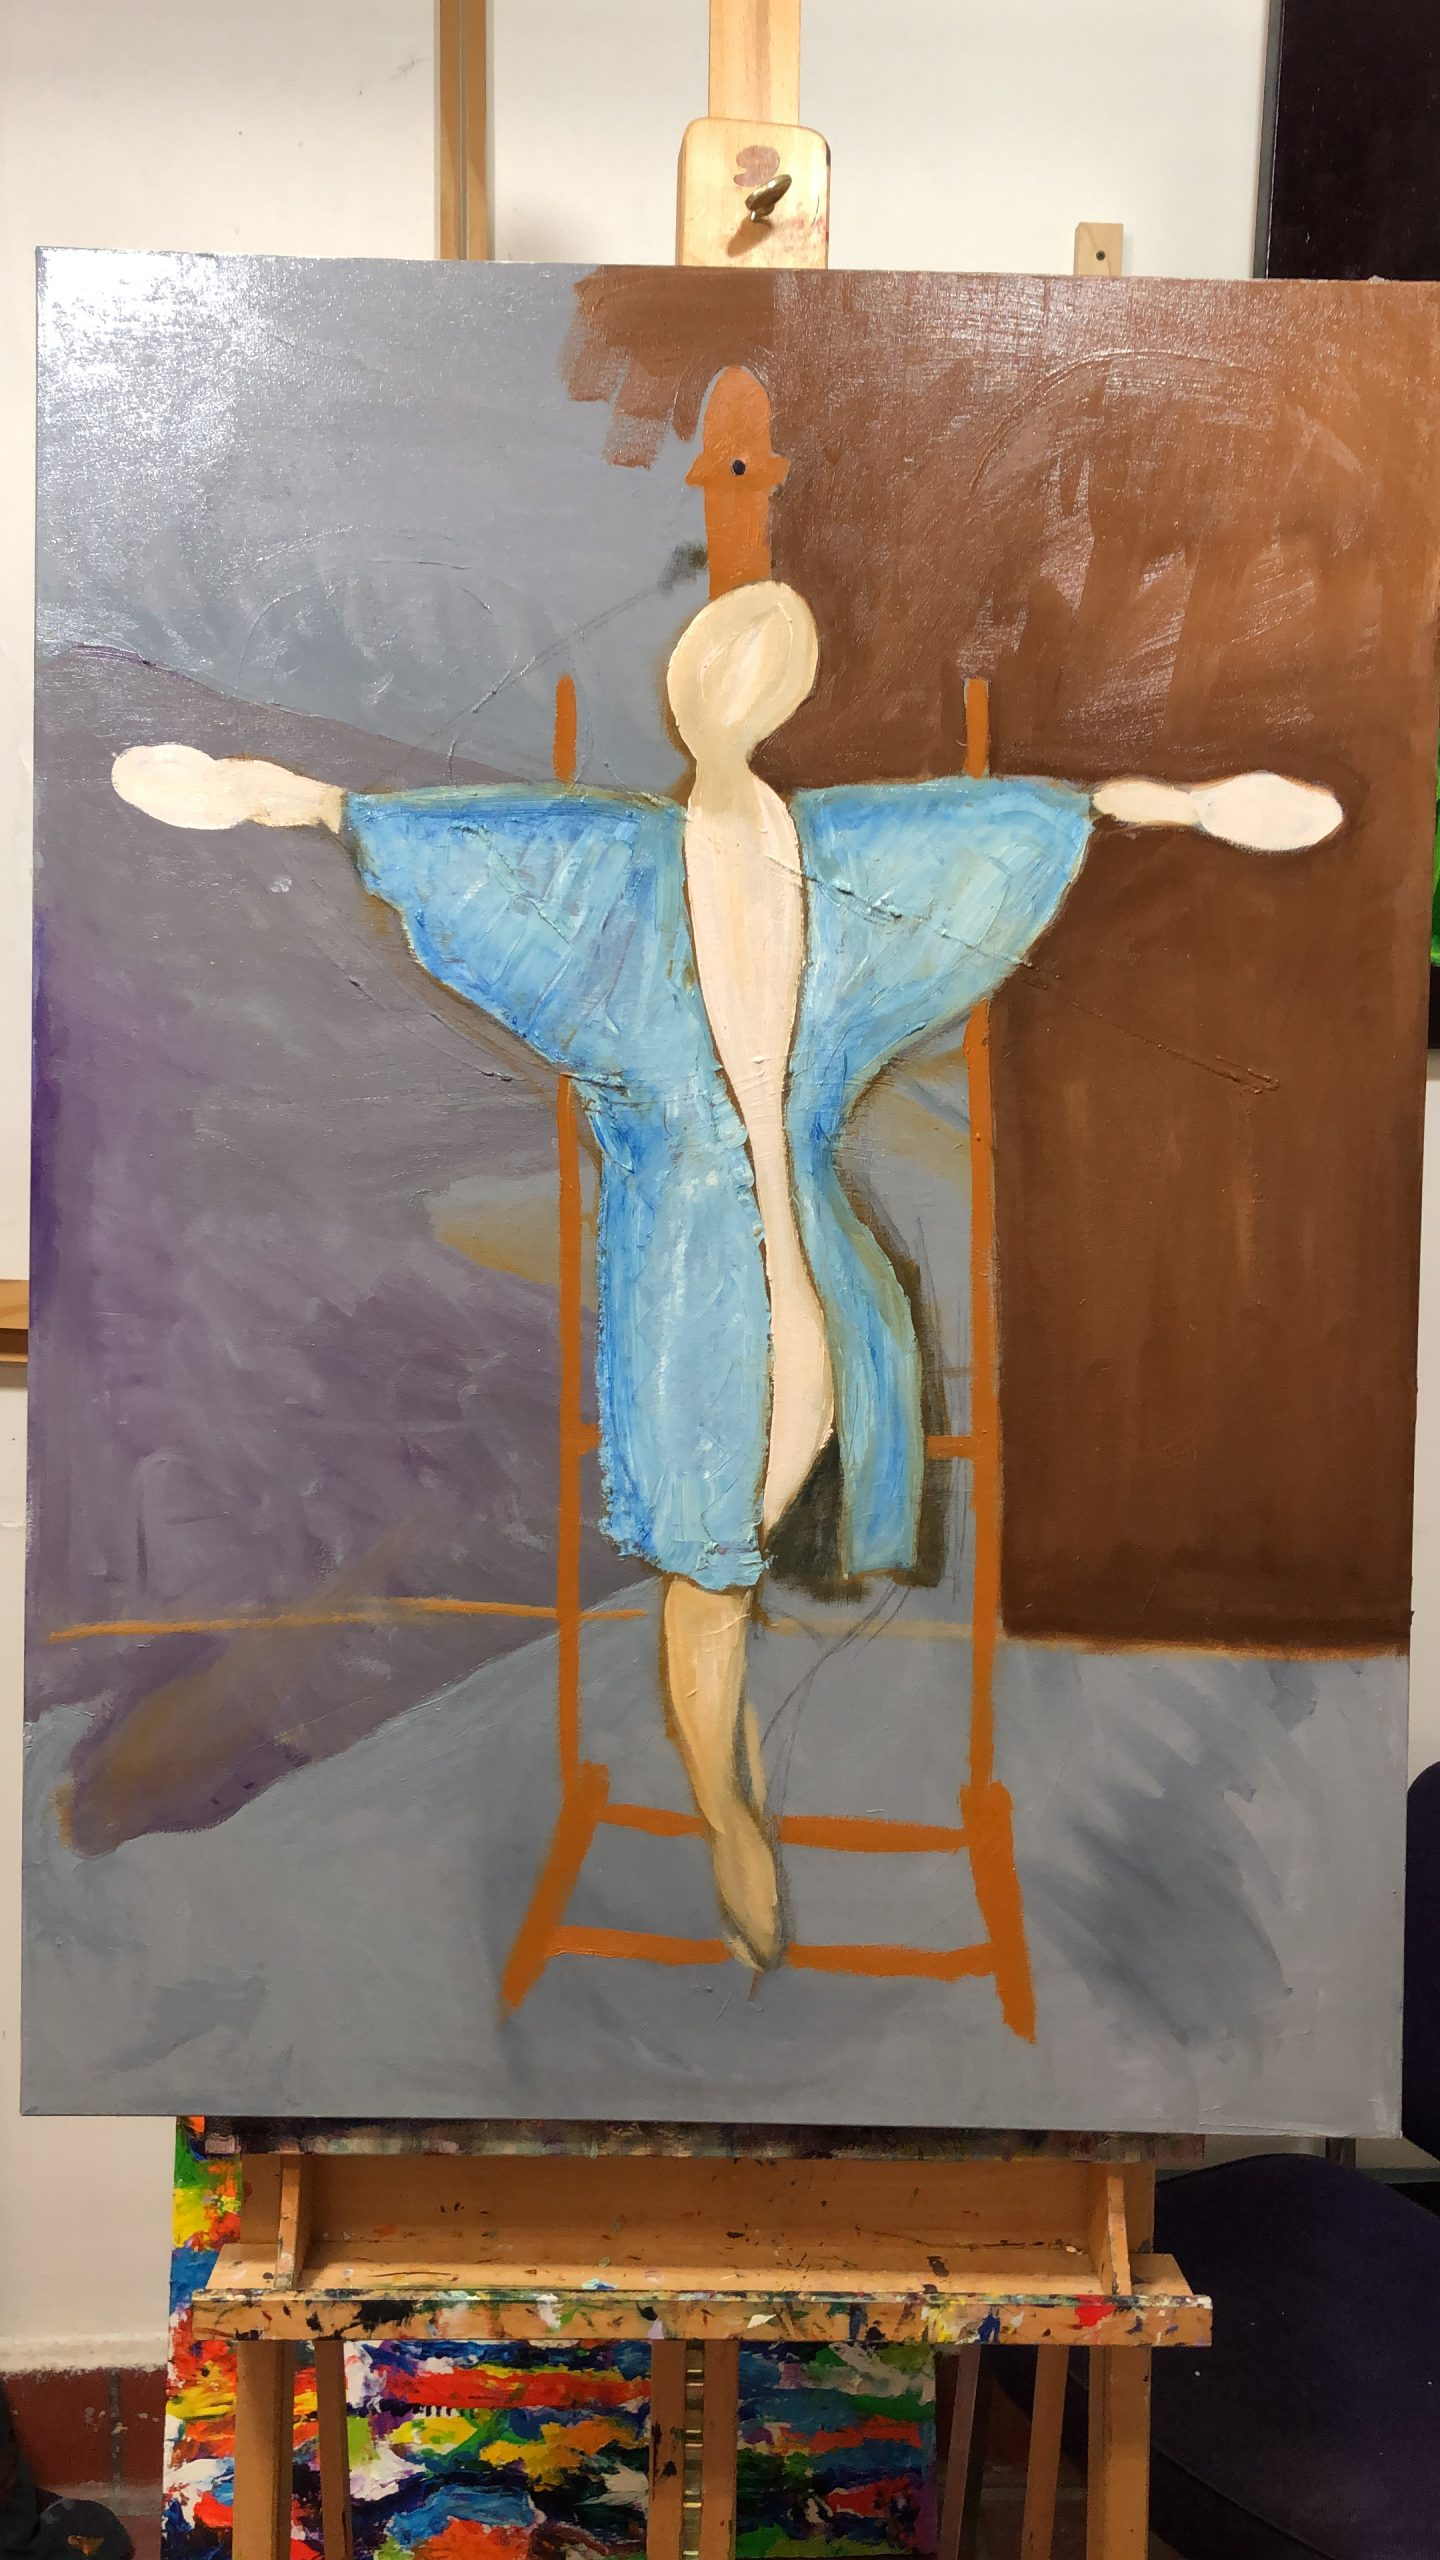 Half formed woman stepping down off an artist's easel